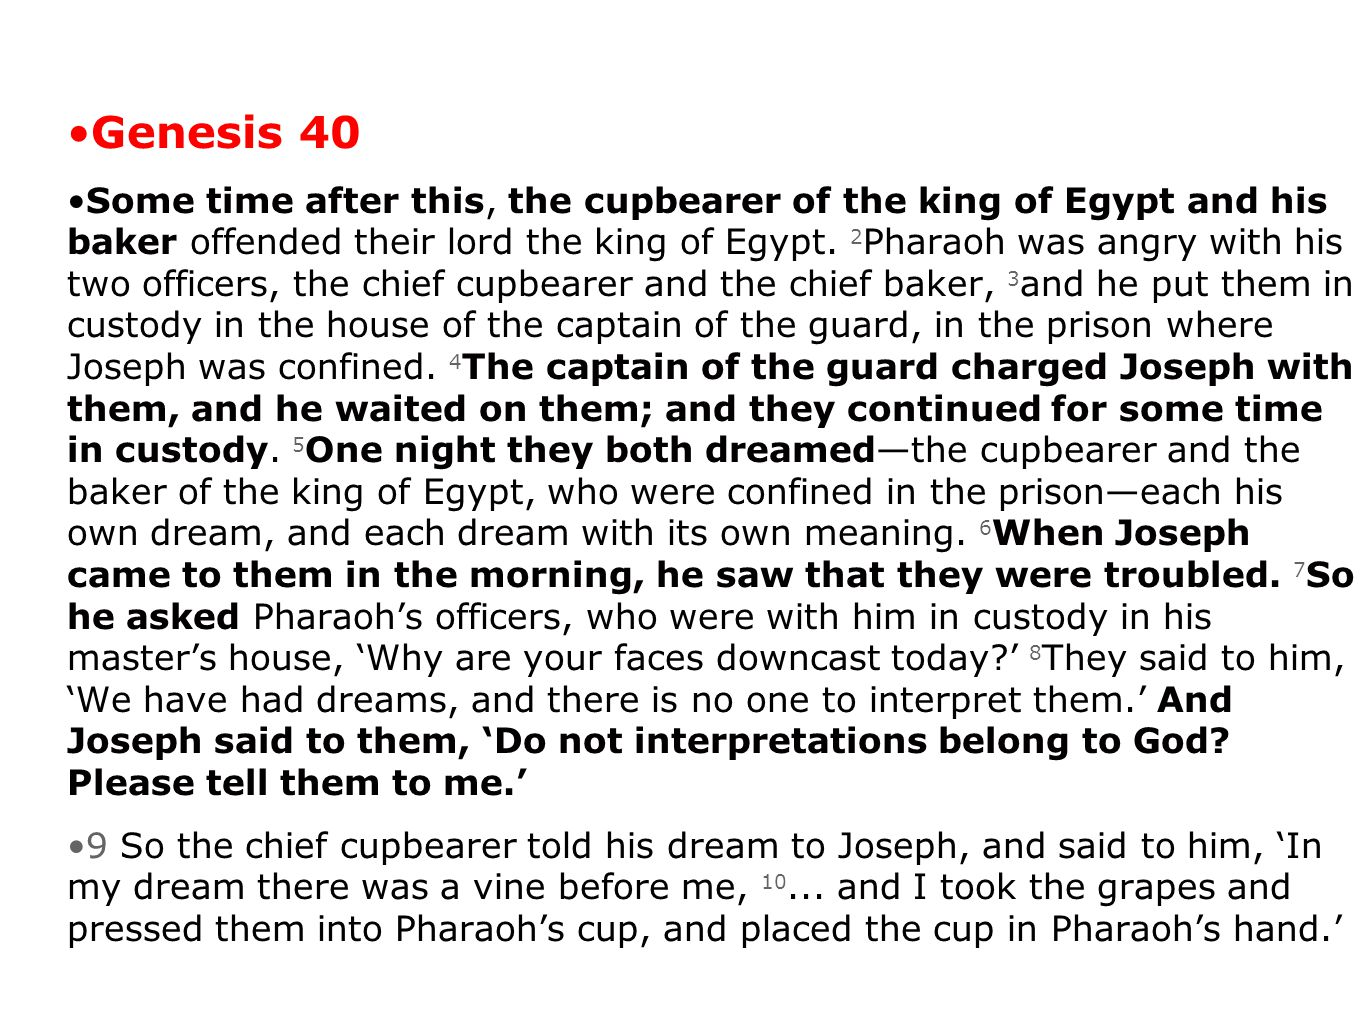 Genesis 40 Some time after this, the cupbearer of the king of Egypt and his baker offended their lord the king of Egypt.